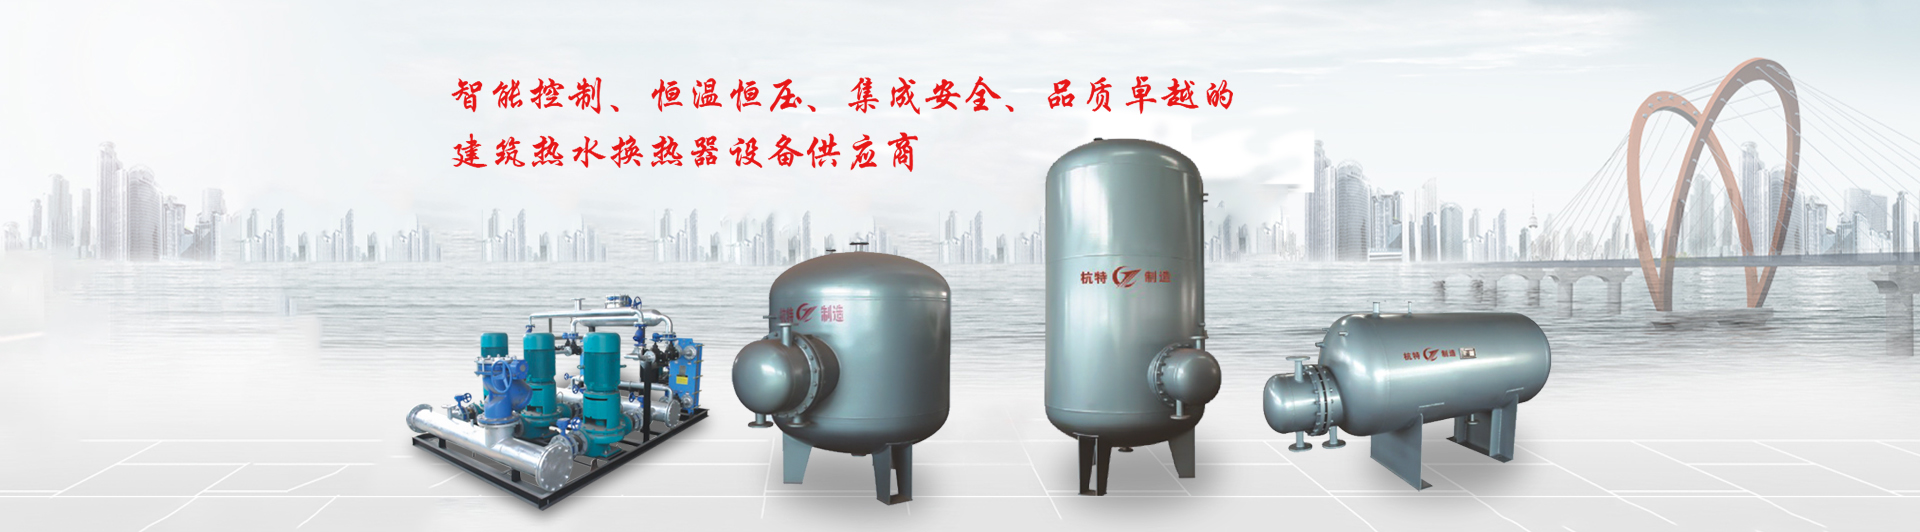 http://www.rongqi.cn/data/images/slide/20190708164425_722.jpg